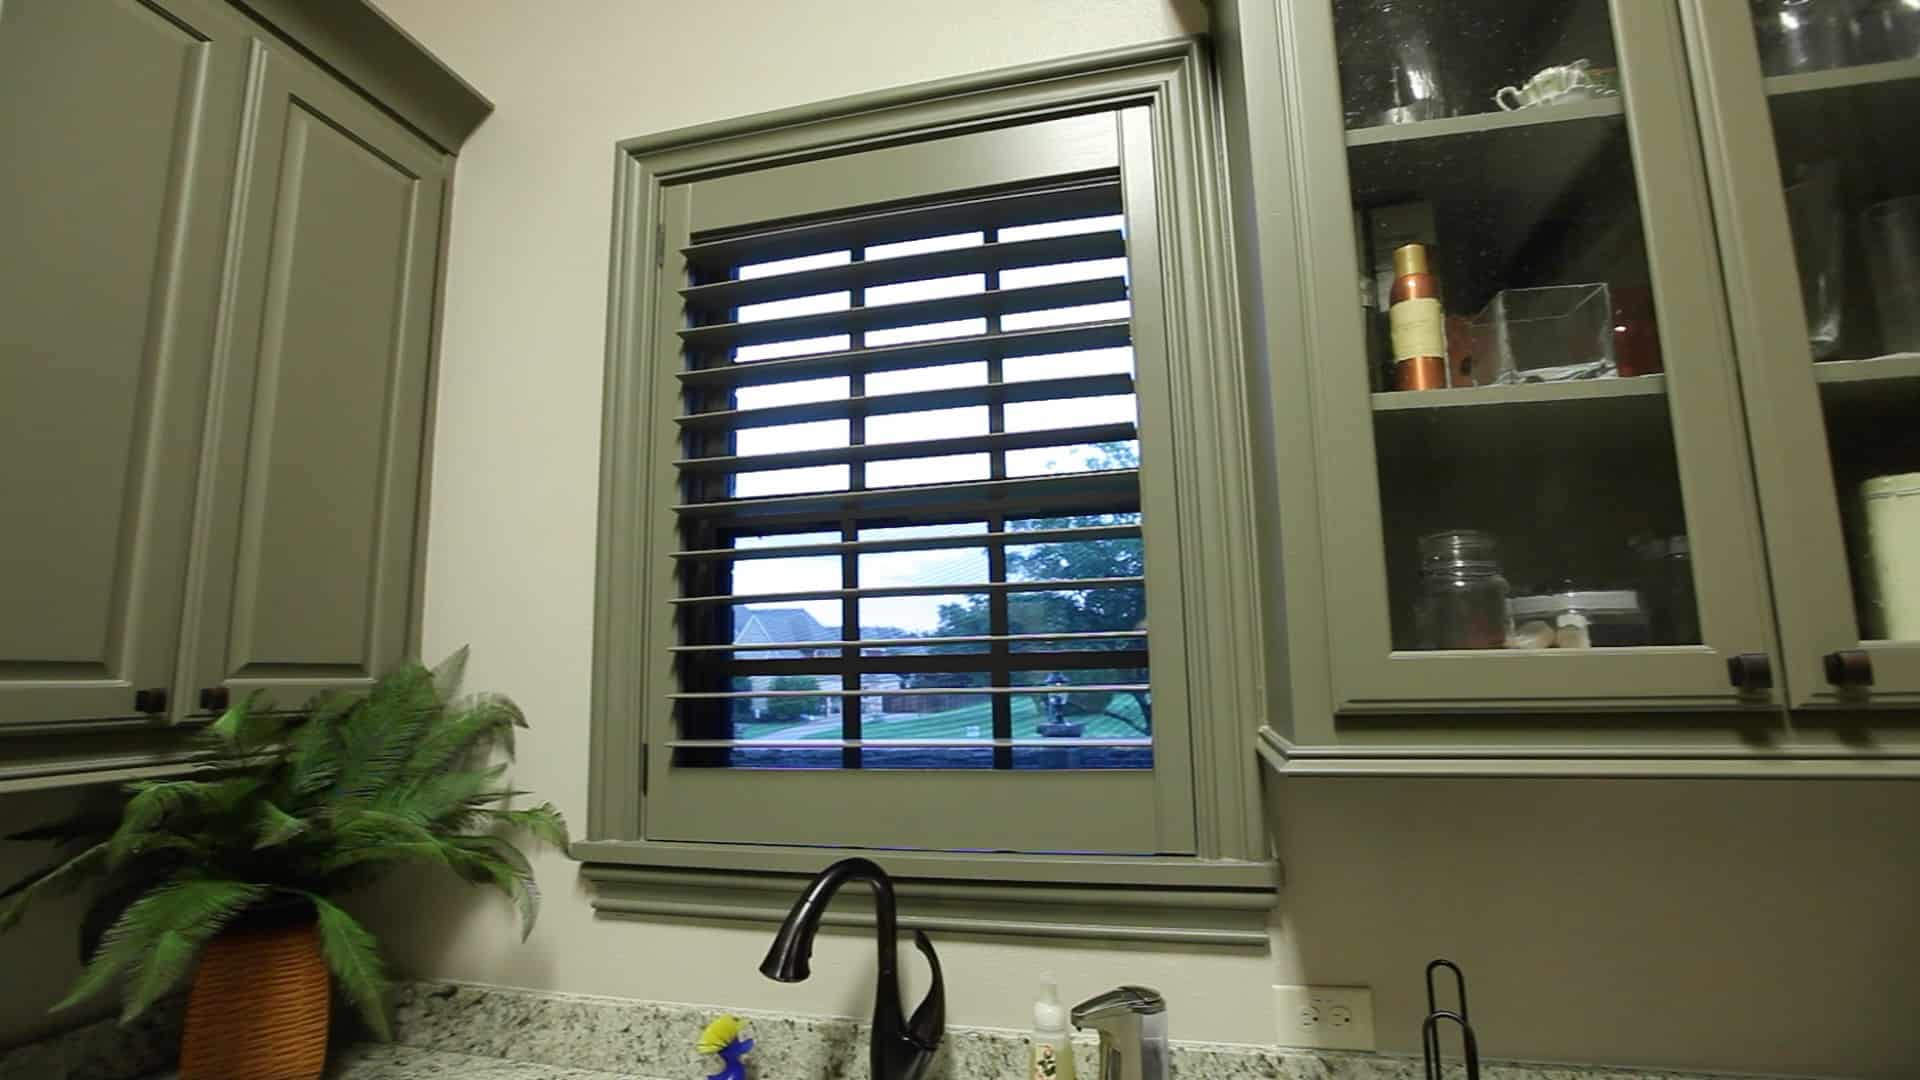 How to make plantation shutters the geek pub - How to make interior window shutters ...